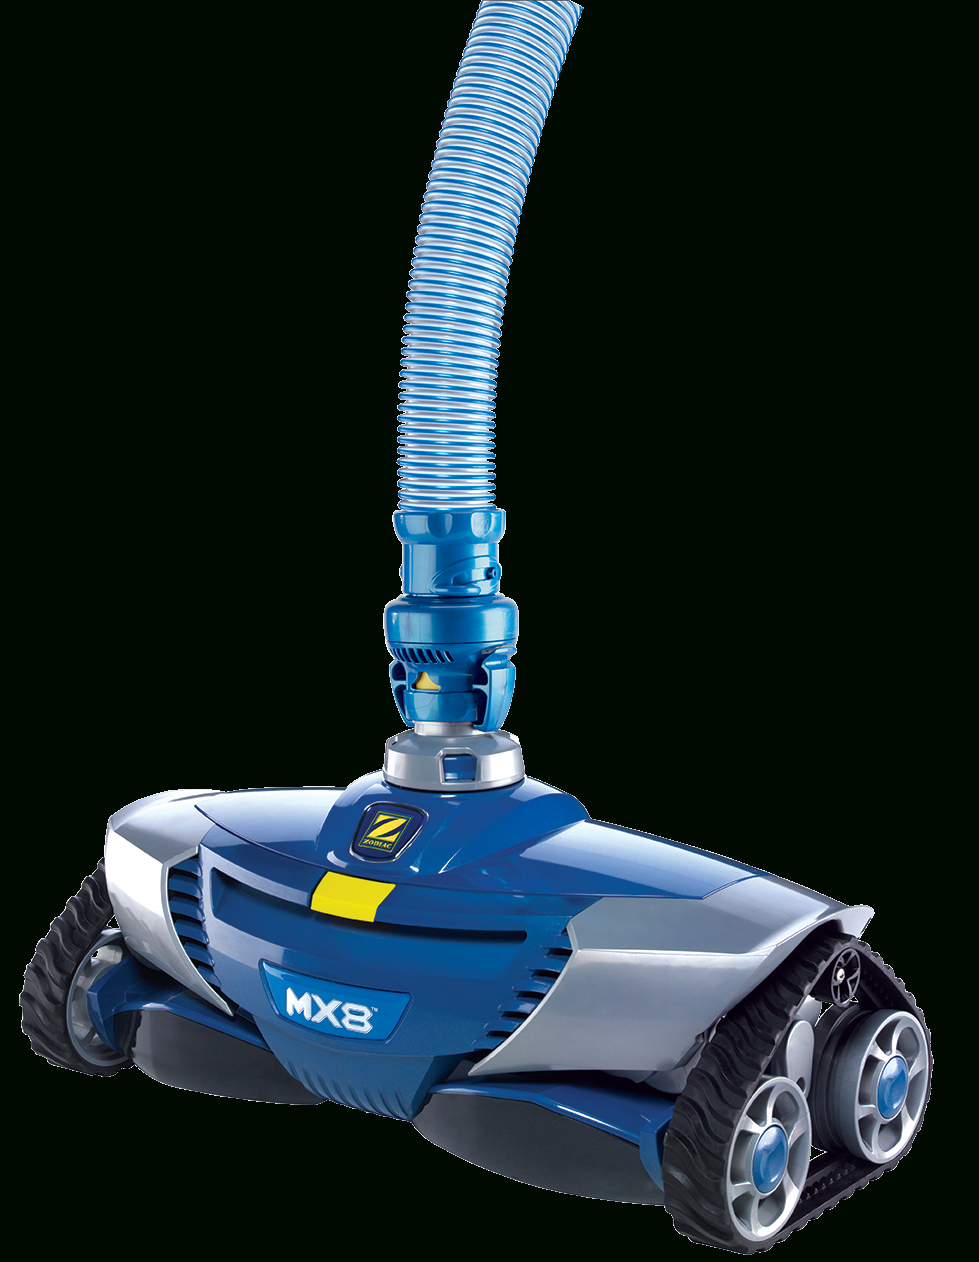 Zodiac Mx8 Suction Pool Cleaner | Zodiac Pool Systems à Robot Piscine Zodiac Mx8